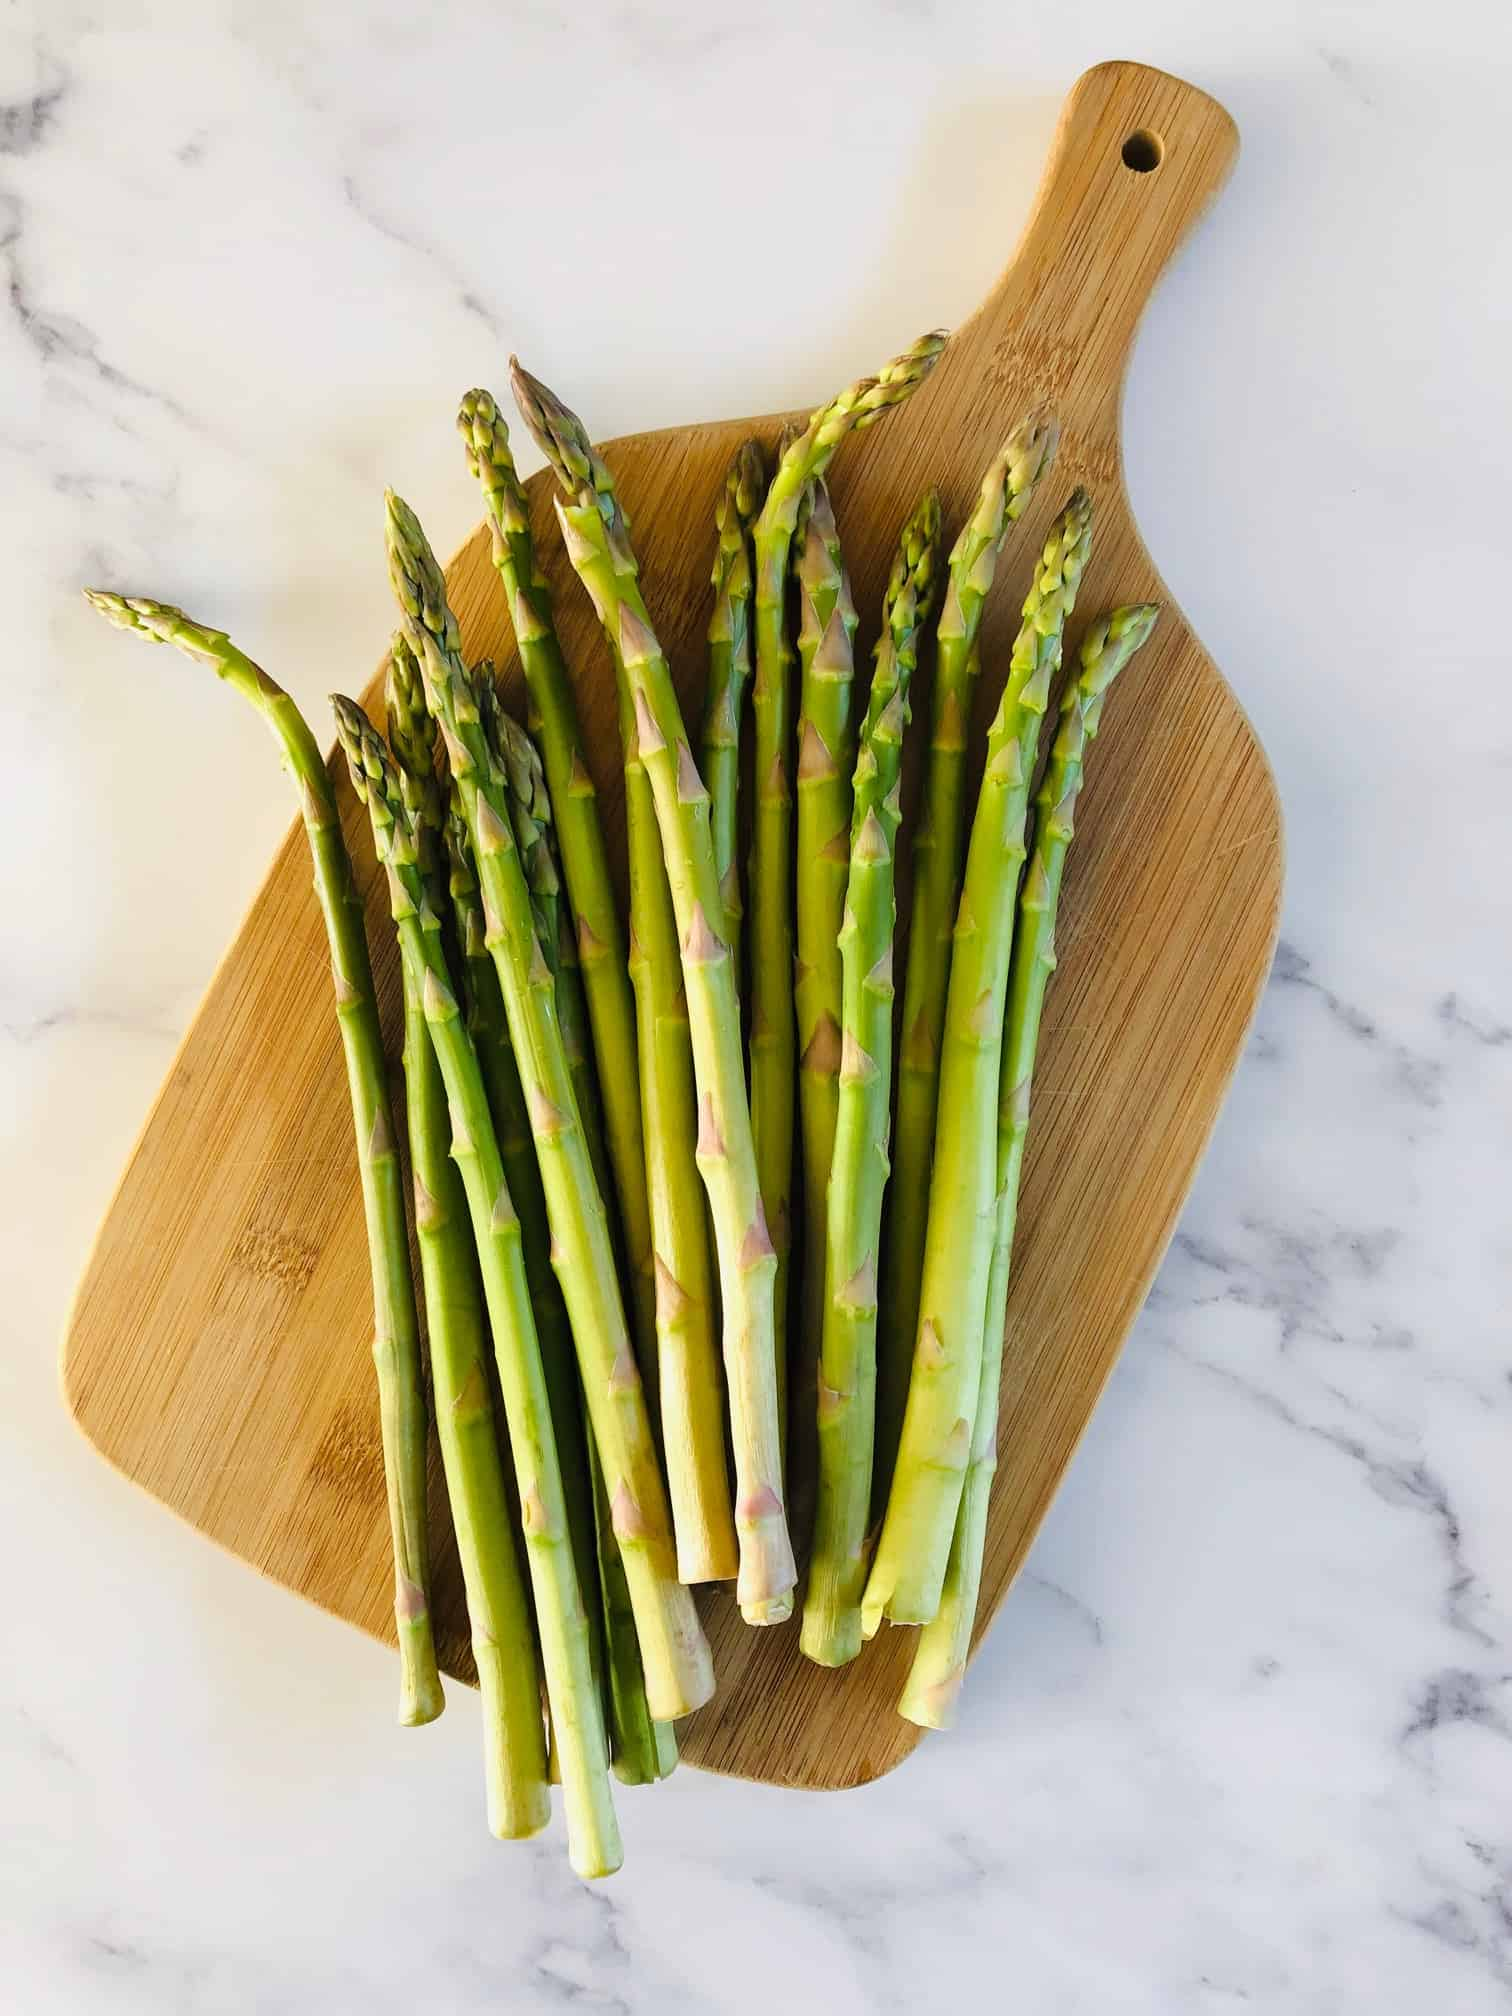 raw asparagus on a chopping board